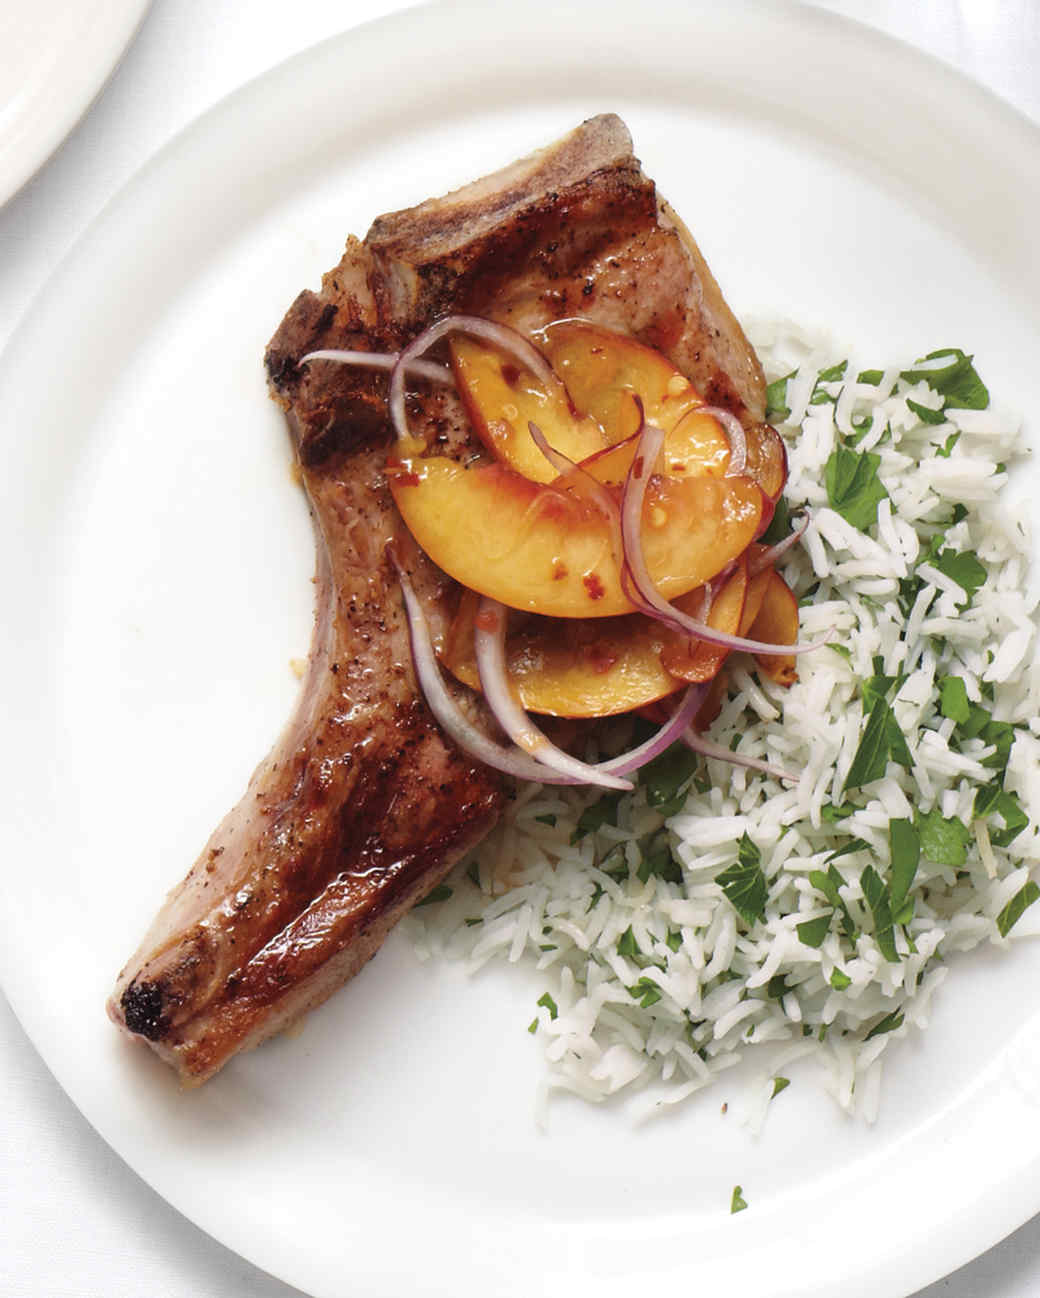 grilled-pork-chops-with-peach-relish-and-herb-rice-0615-d107287-0615 ...